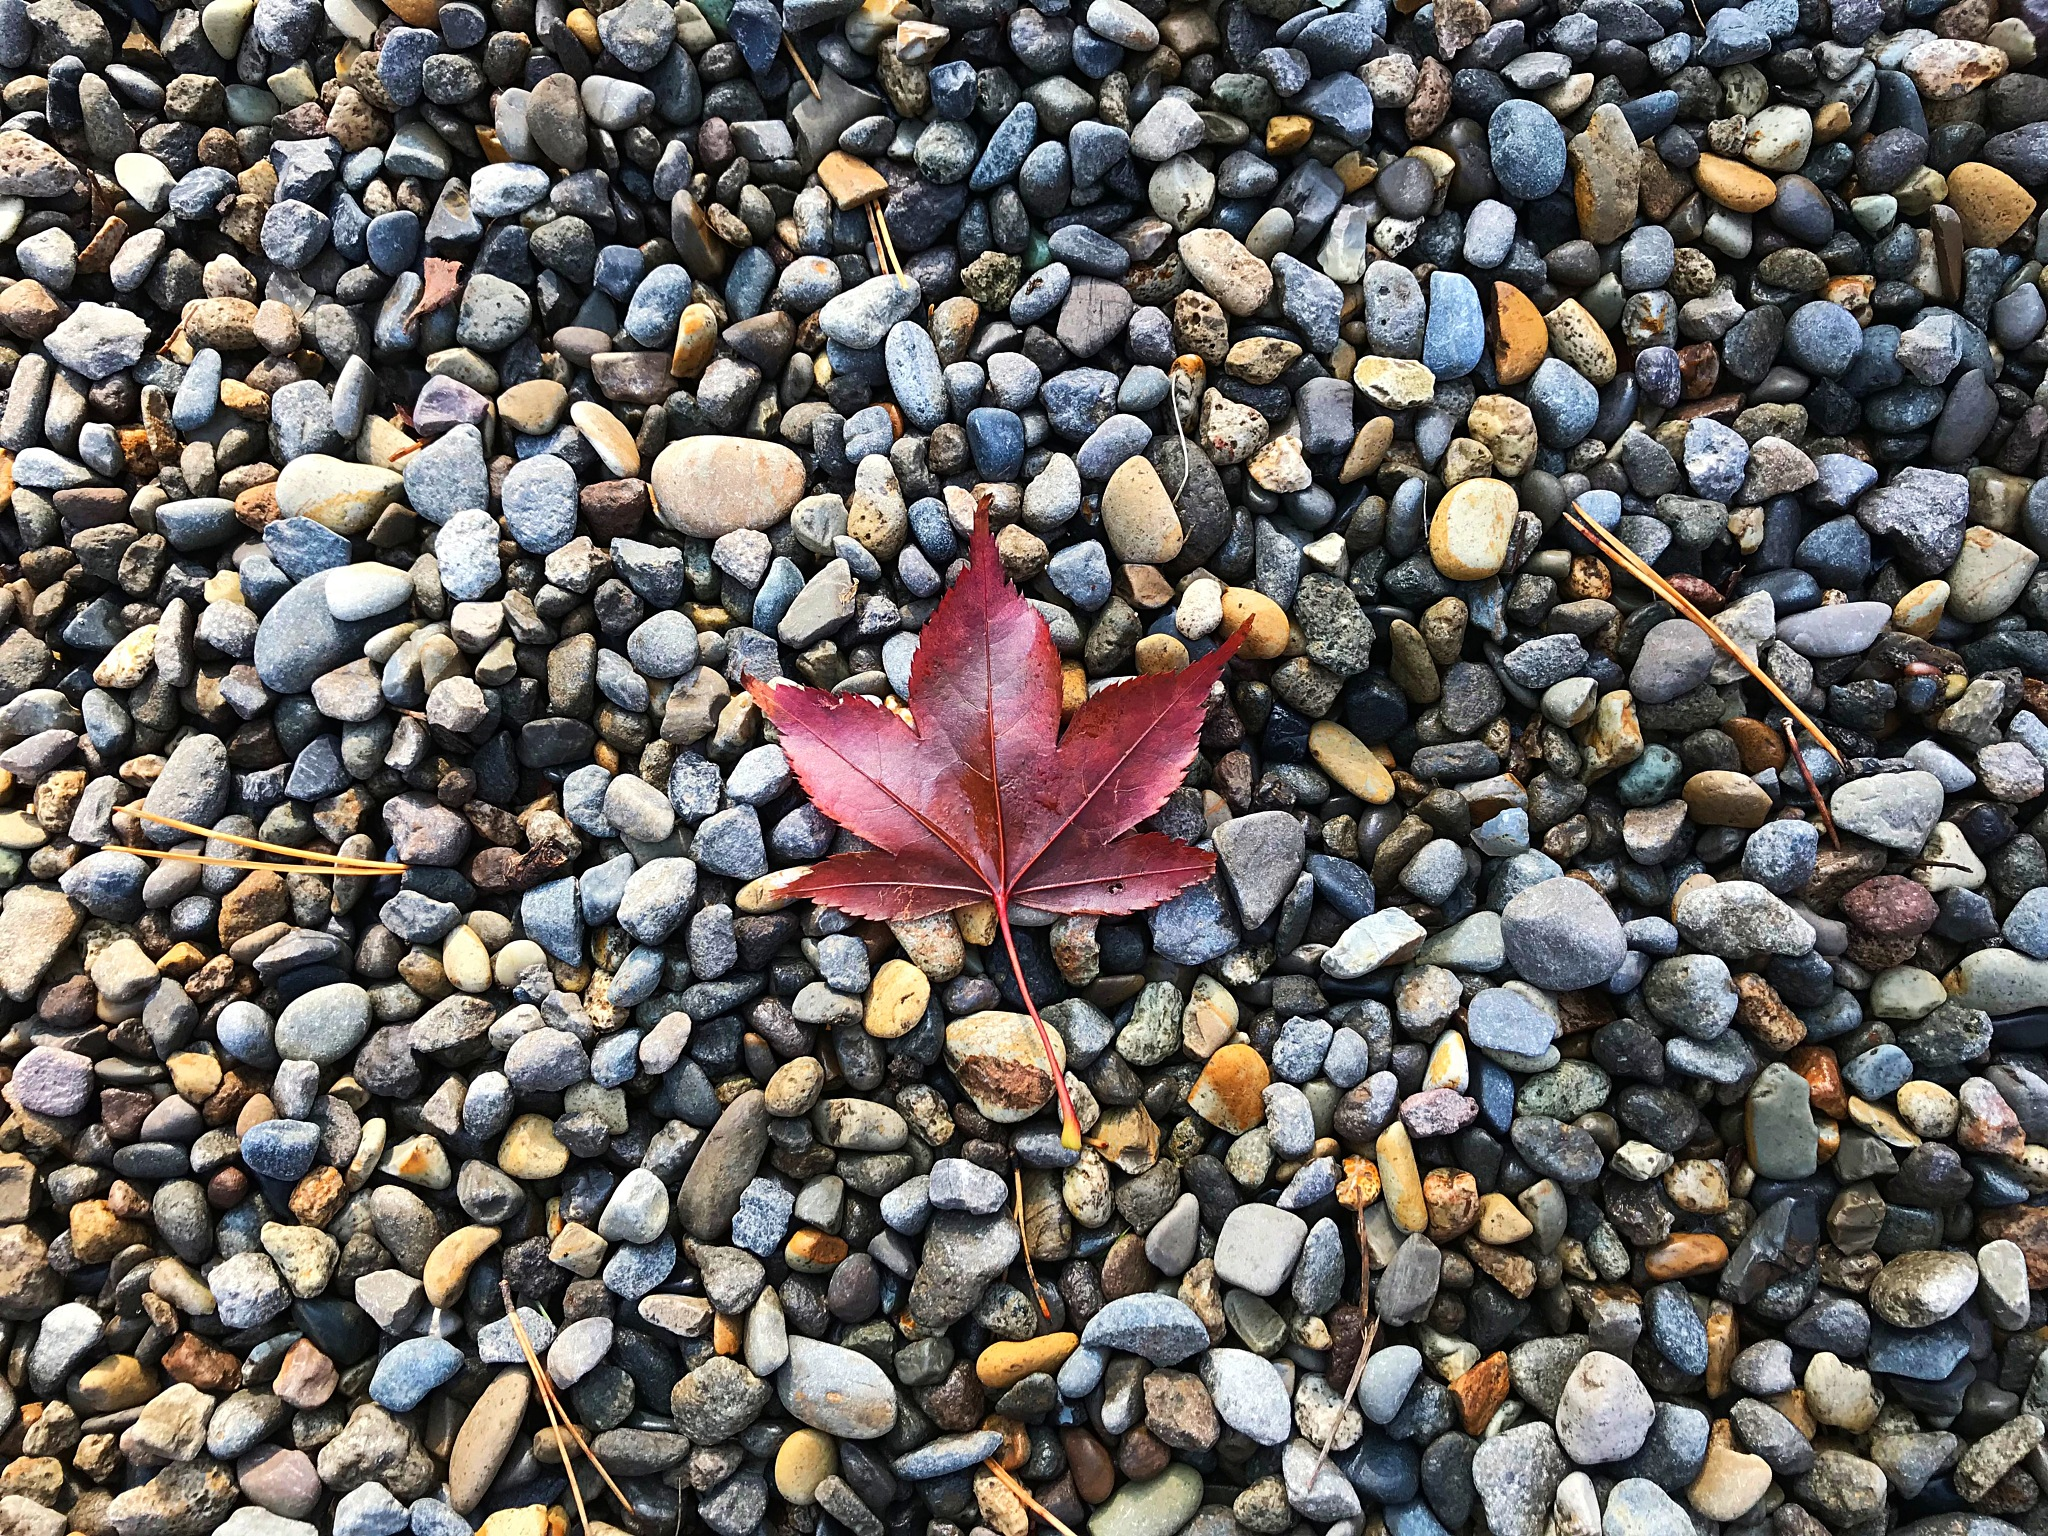 Red autumn leaf and the pebble by SOE AUNG LIN